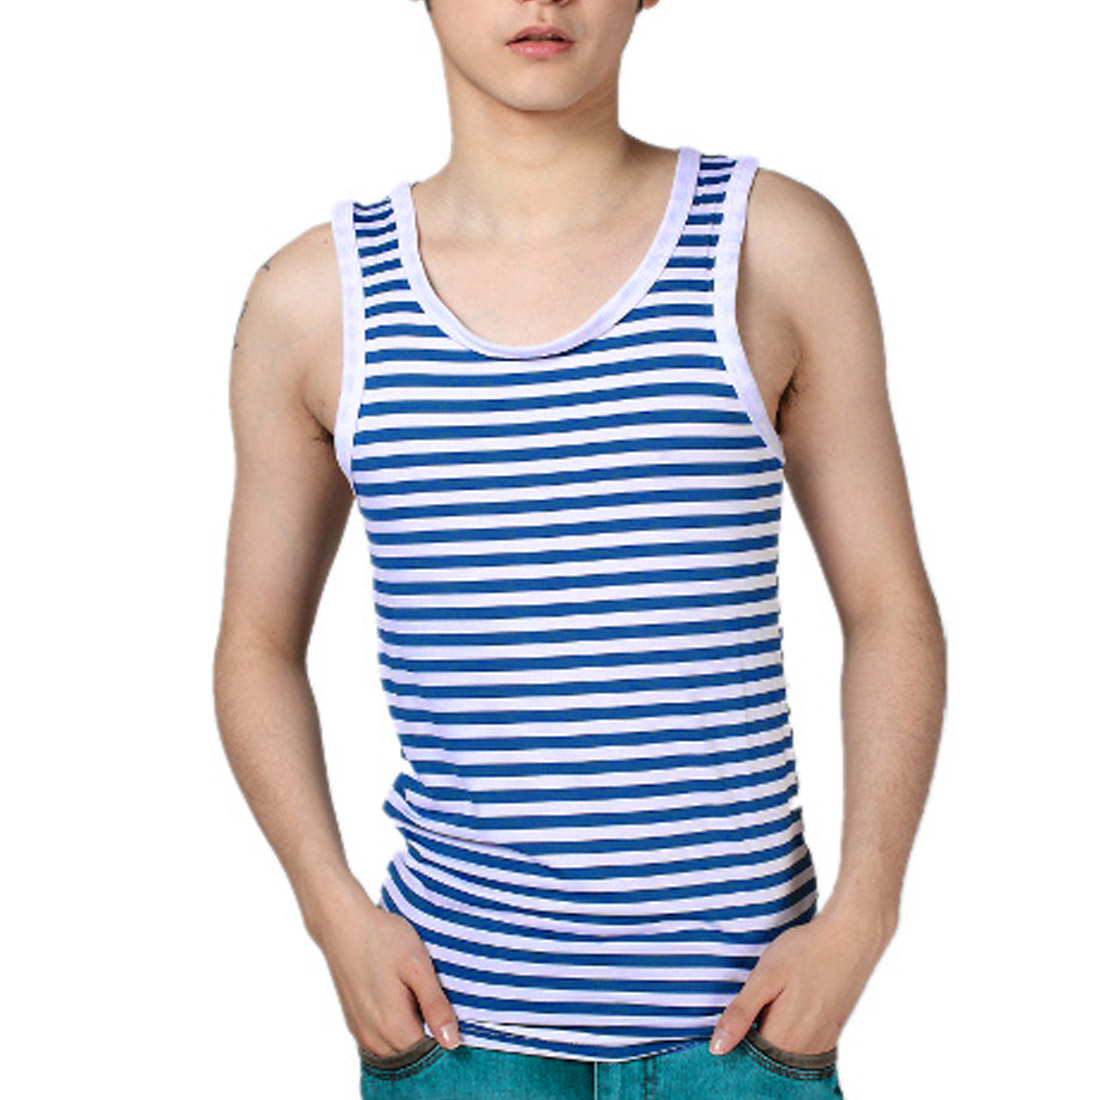 Men U Neck Pullover Sleeveless Stripes Summer Wearing Leisure Tank Top Blue White S